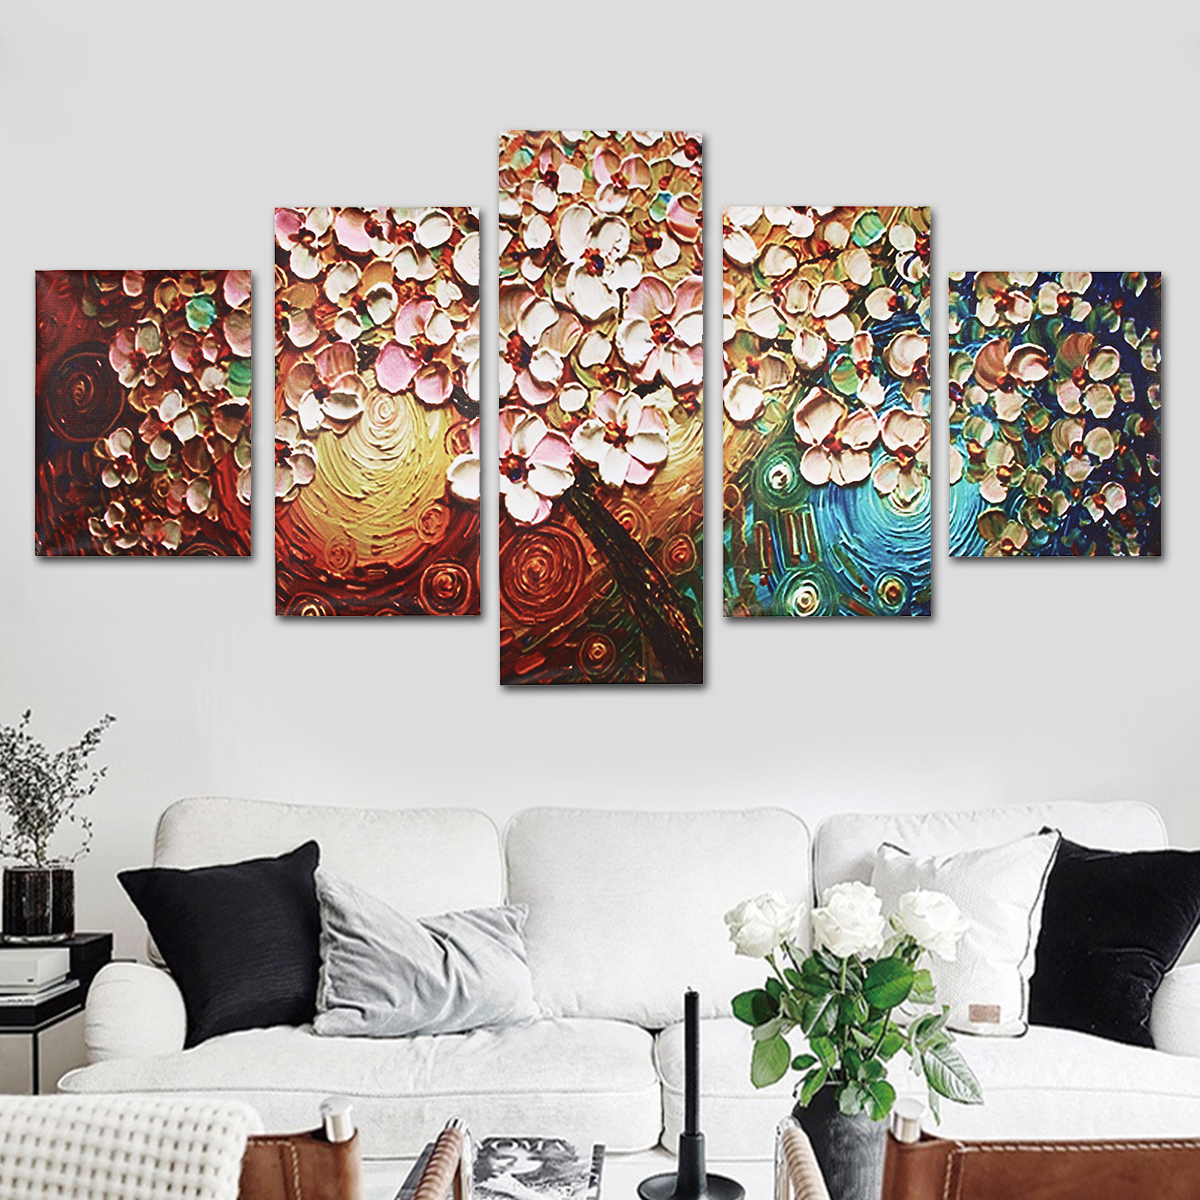 5PCS LARGE CANVAS WALL MODERN ABSTRACT PRINT ART PICTURE ANIMAL PATTERN